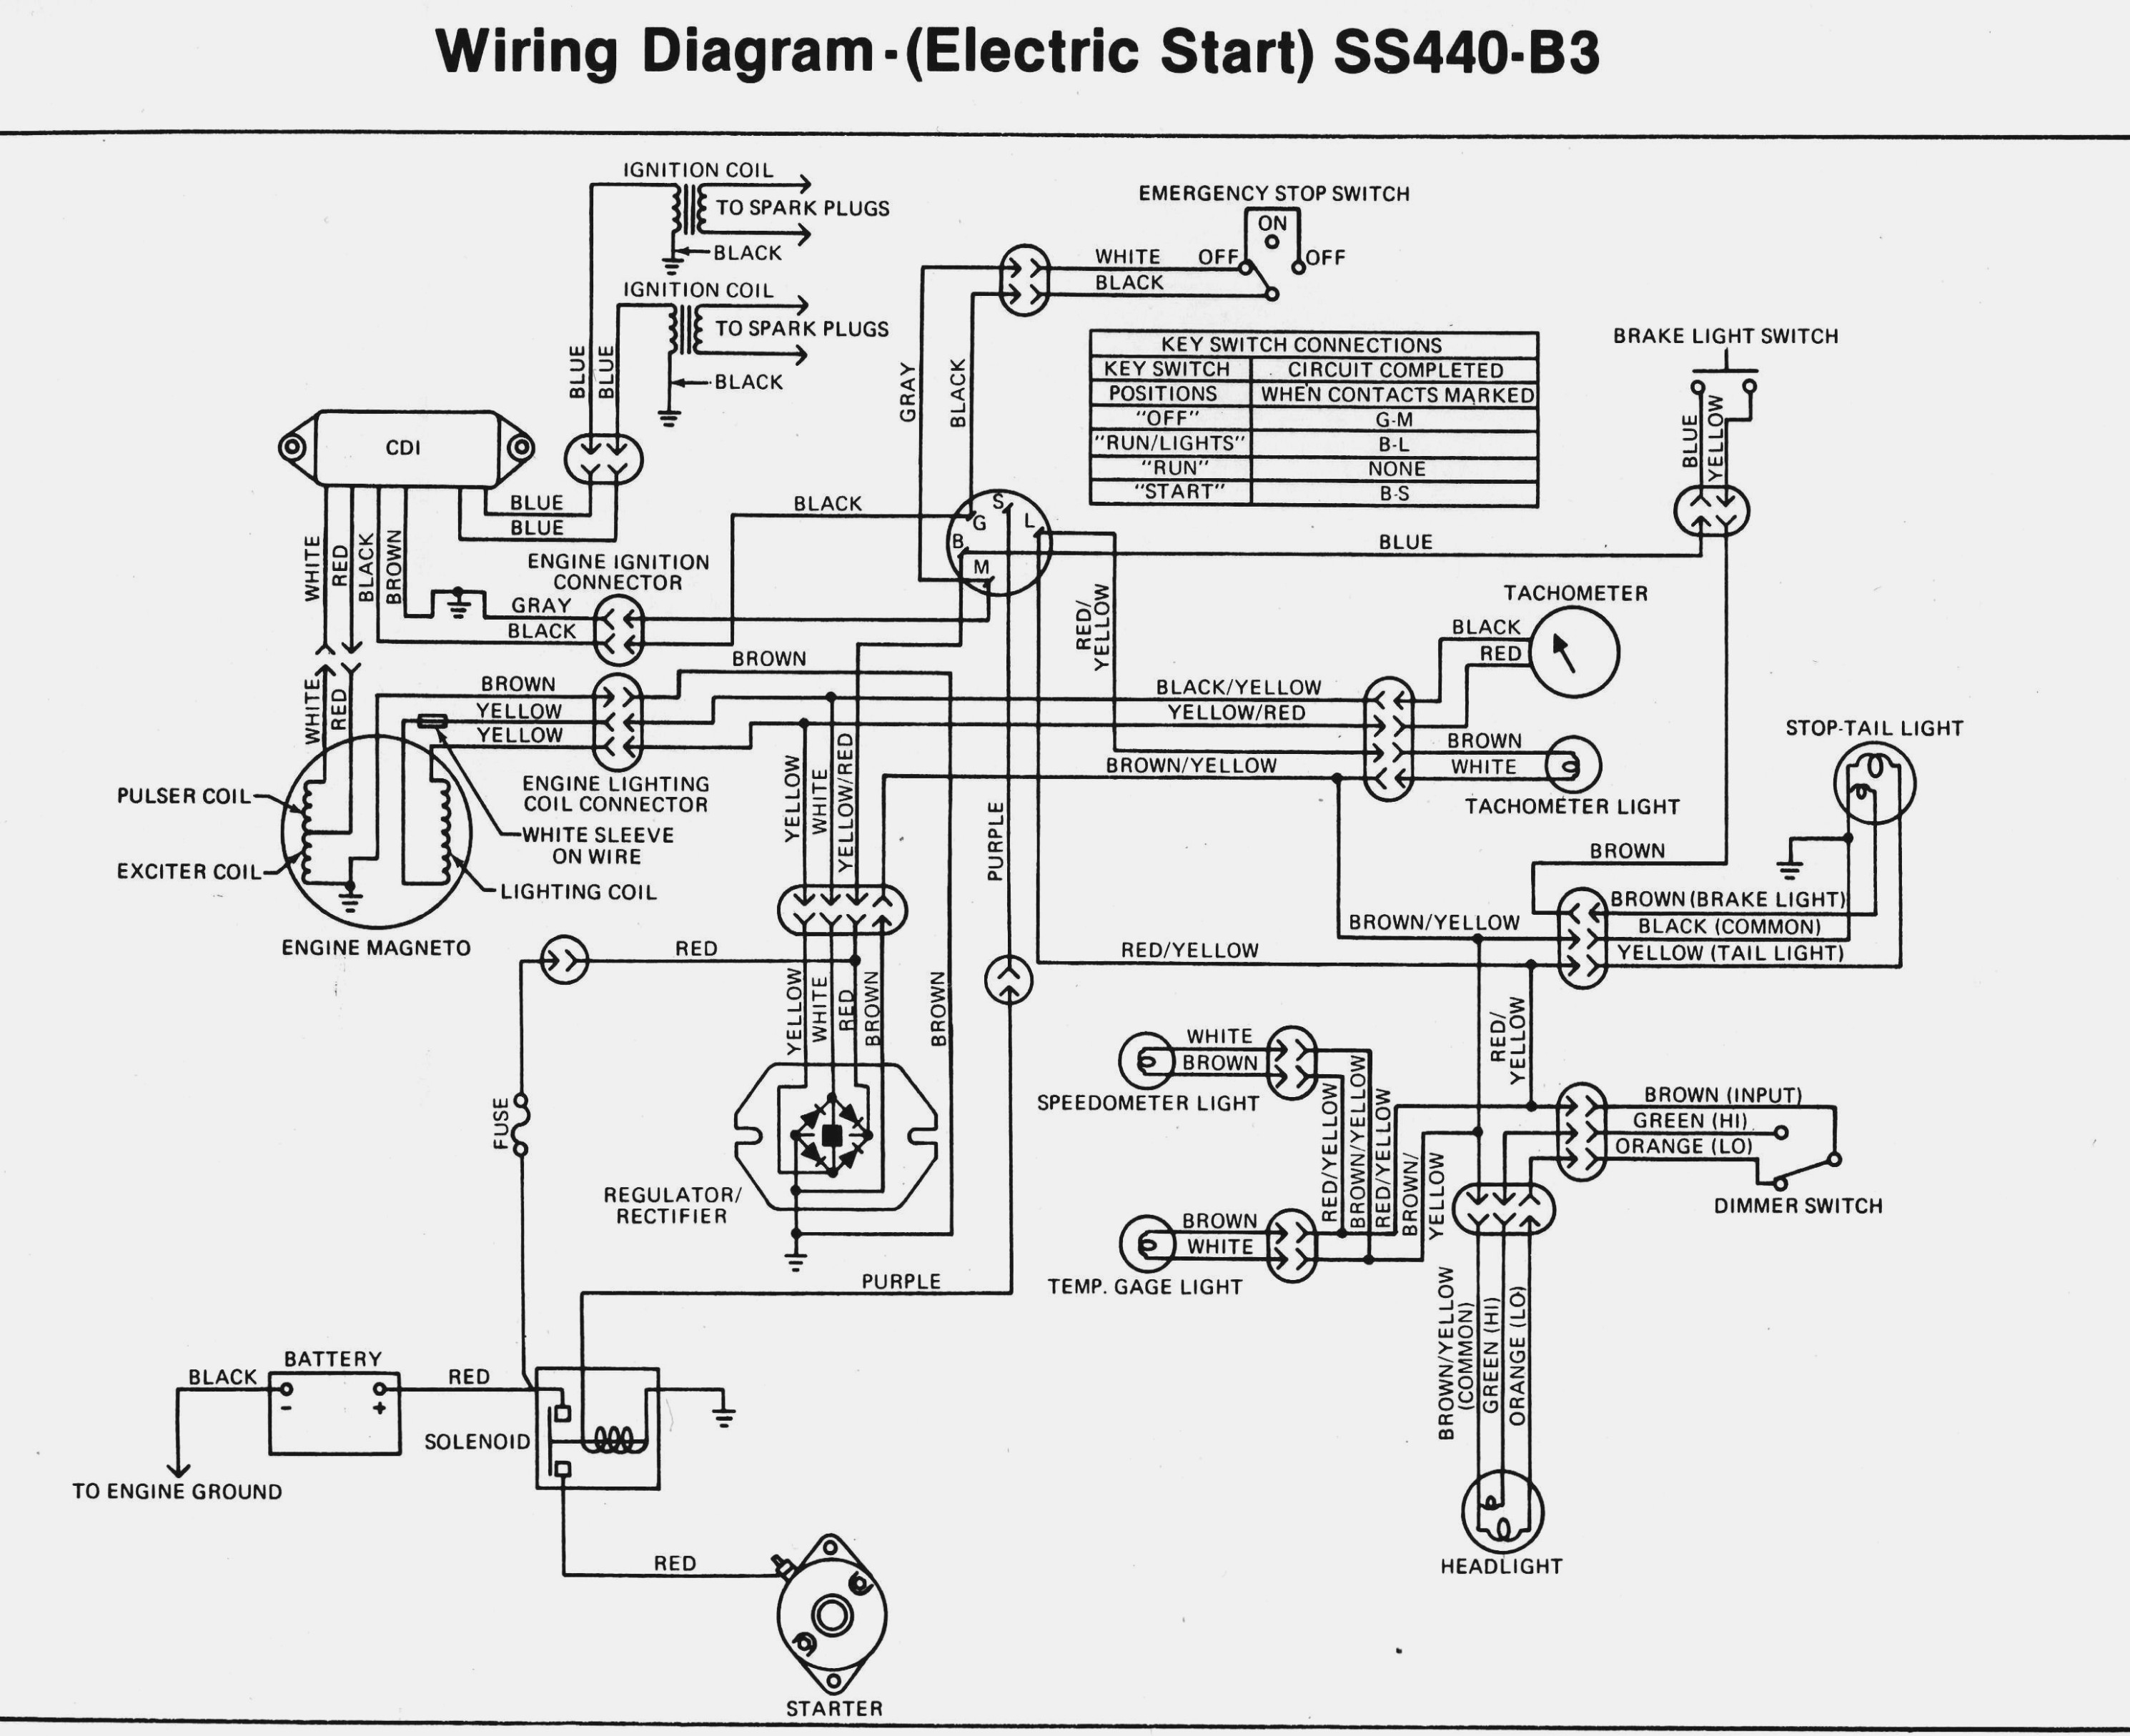 DIAGRAM] Honda Gx160 Workshop Wiring Diagram FULL Version HD Quality Wiring  Diagram - CAT5WIRINGDIAGRAM.VAGALUME.FRvagalume.fr